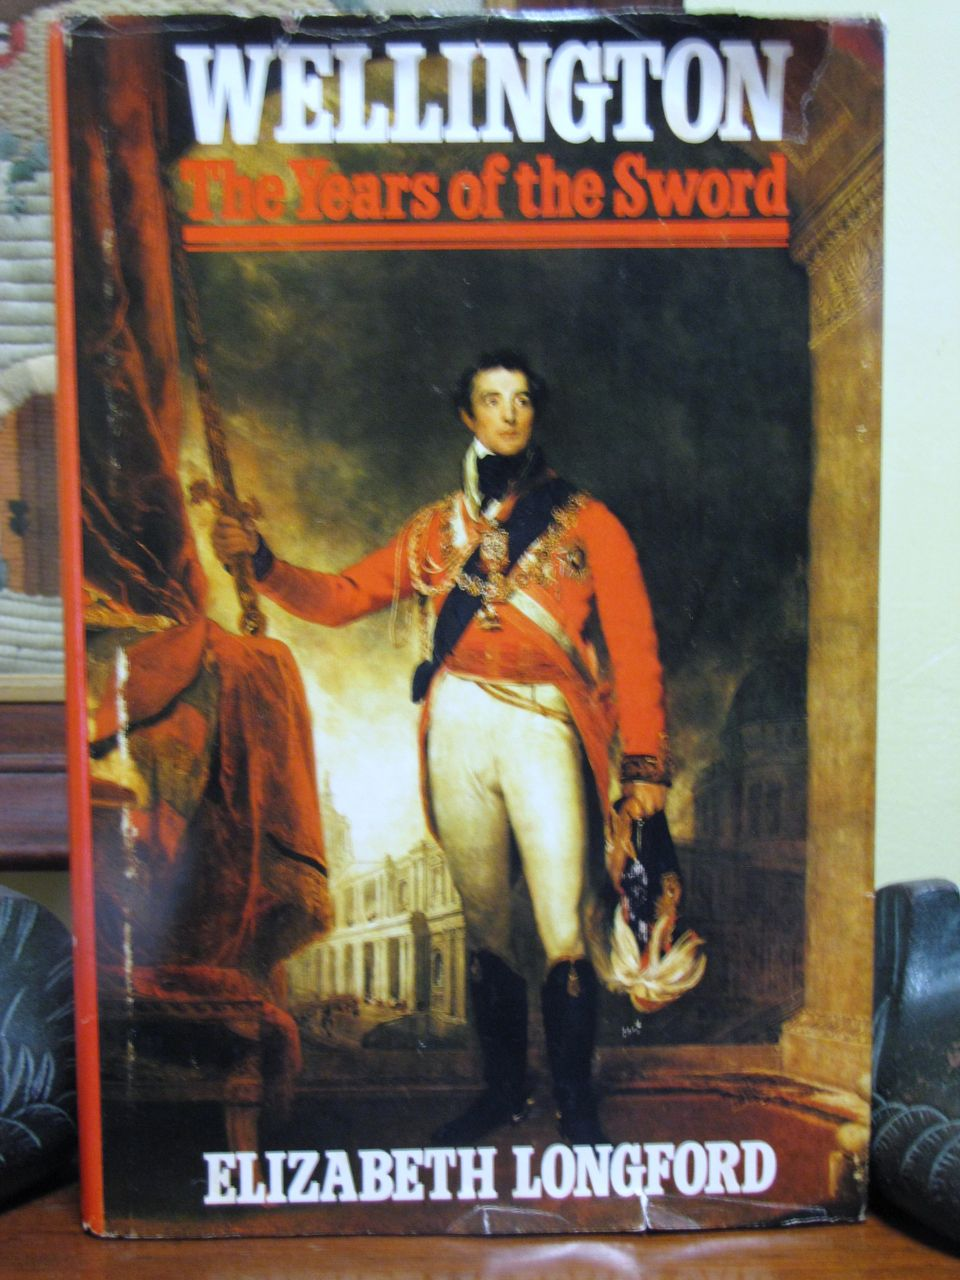 "1969 ""Wellington the Years of the Sword"" by Elizabeth Longford 1st Edition‏"